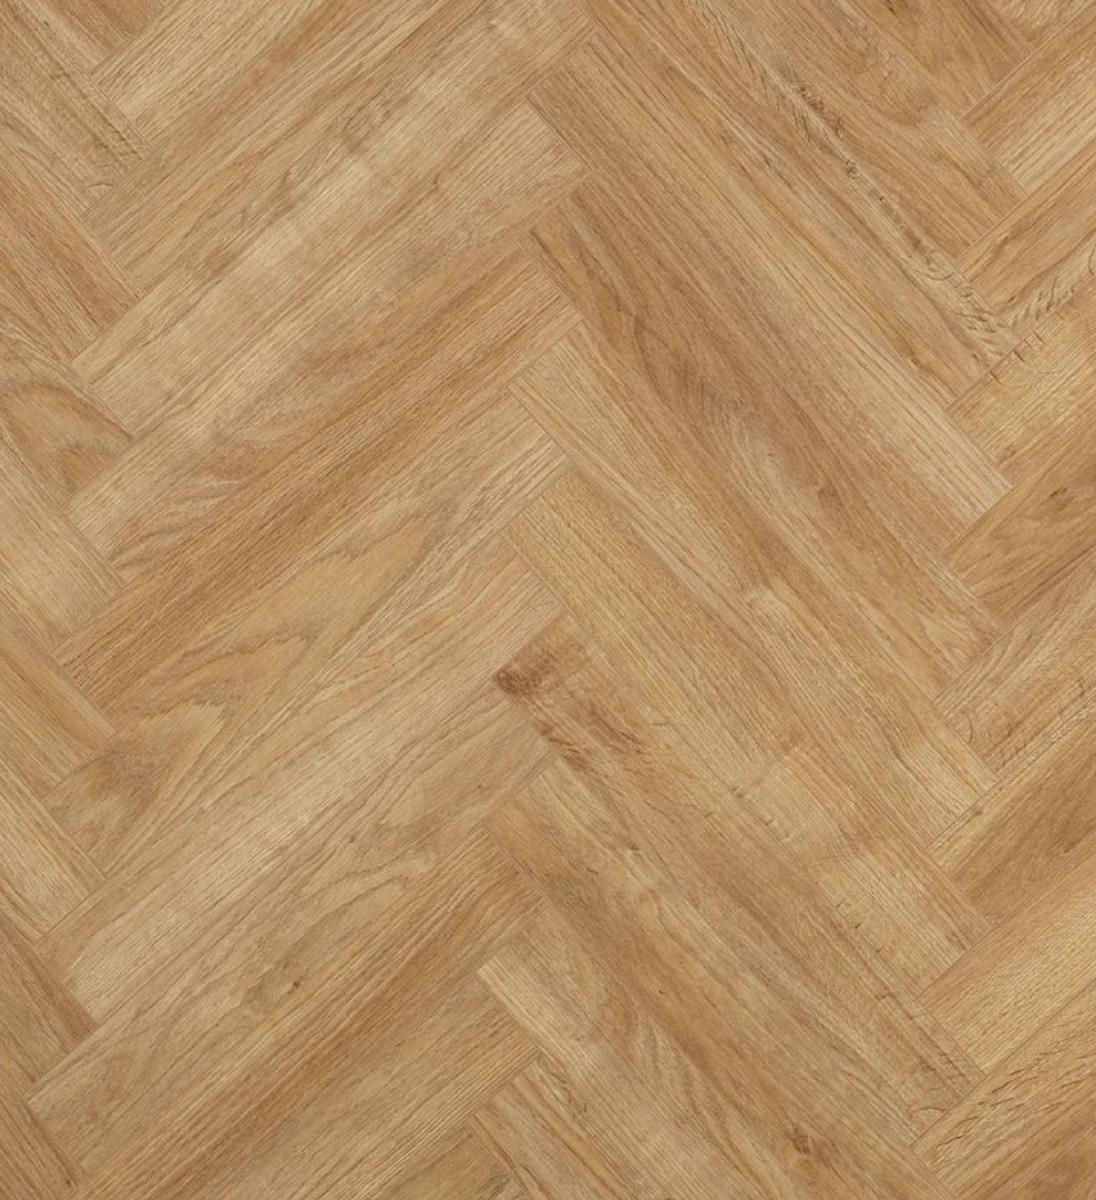 Berry Alloc Chateau Java Natural Parquet Herringbone Laminate Flooring